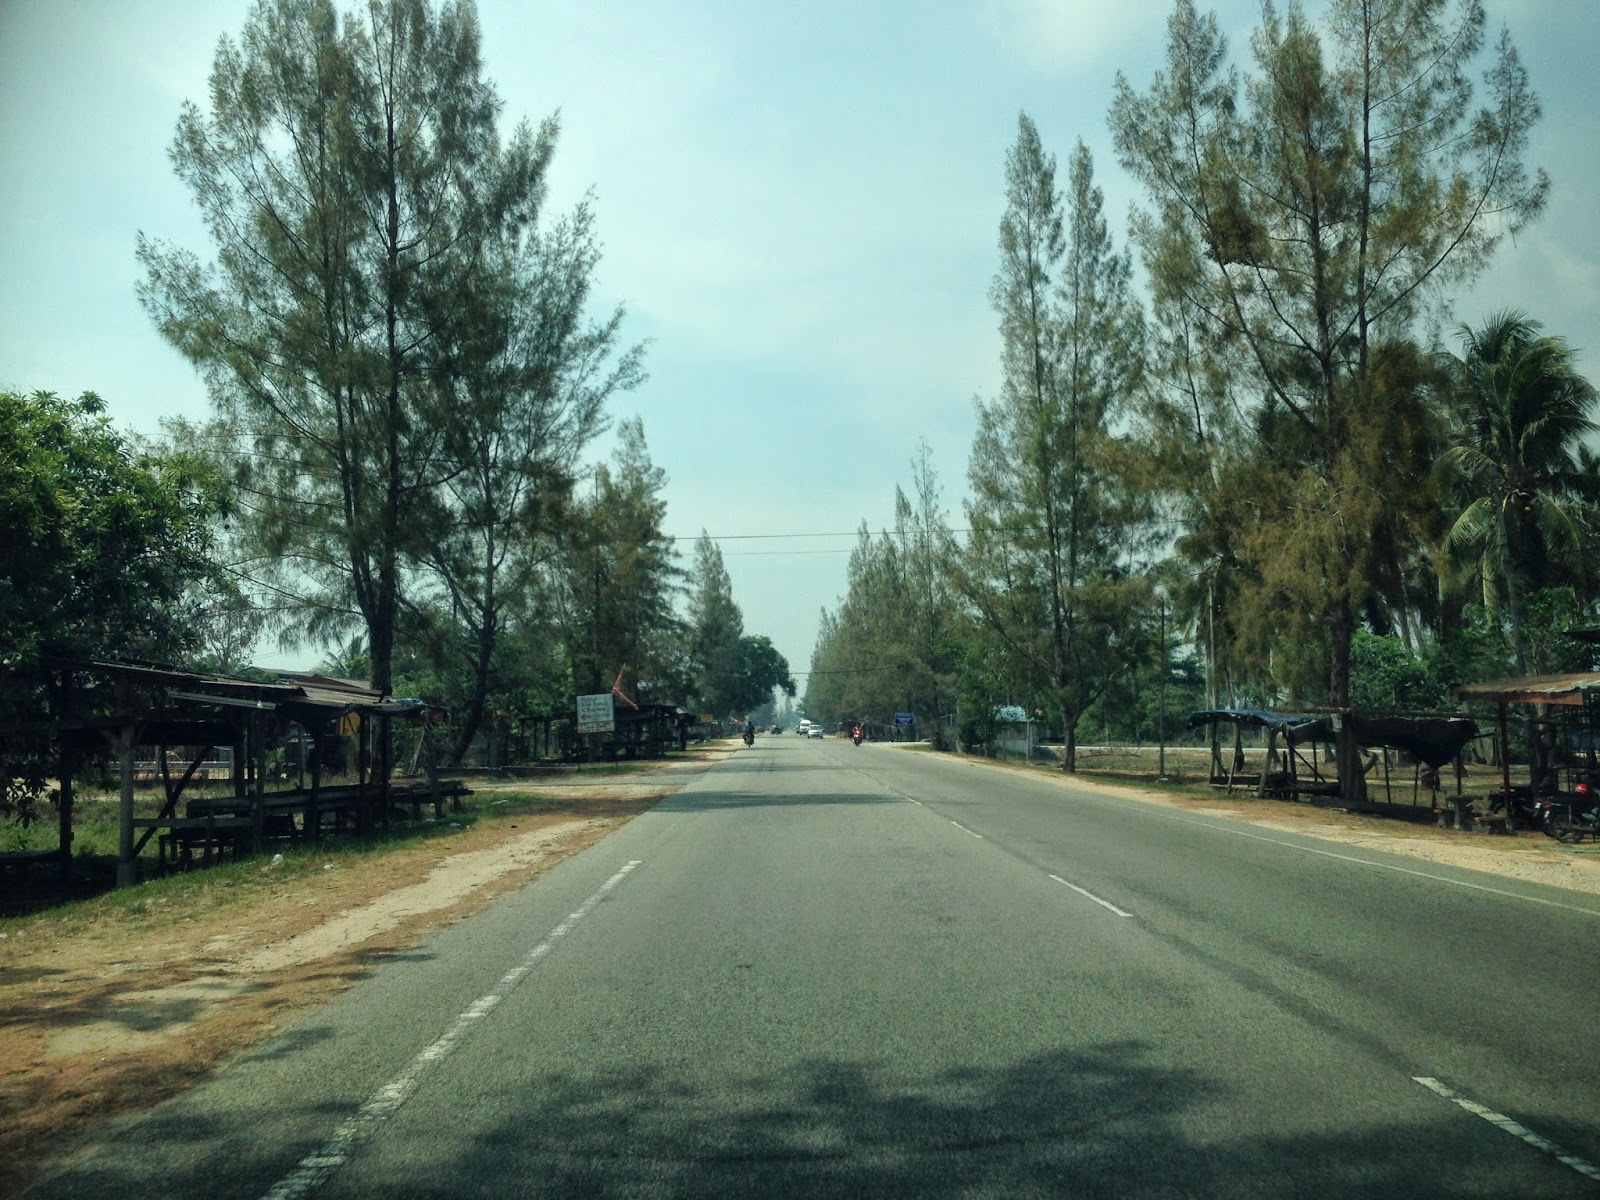 On the road to Pantai Bisikan Bayu